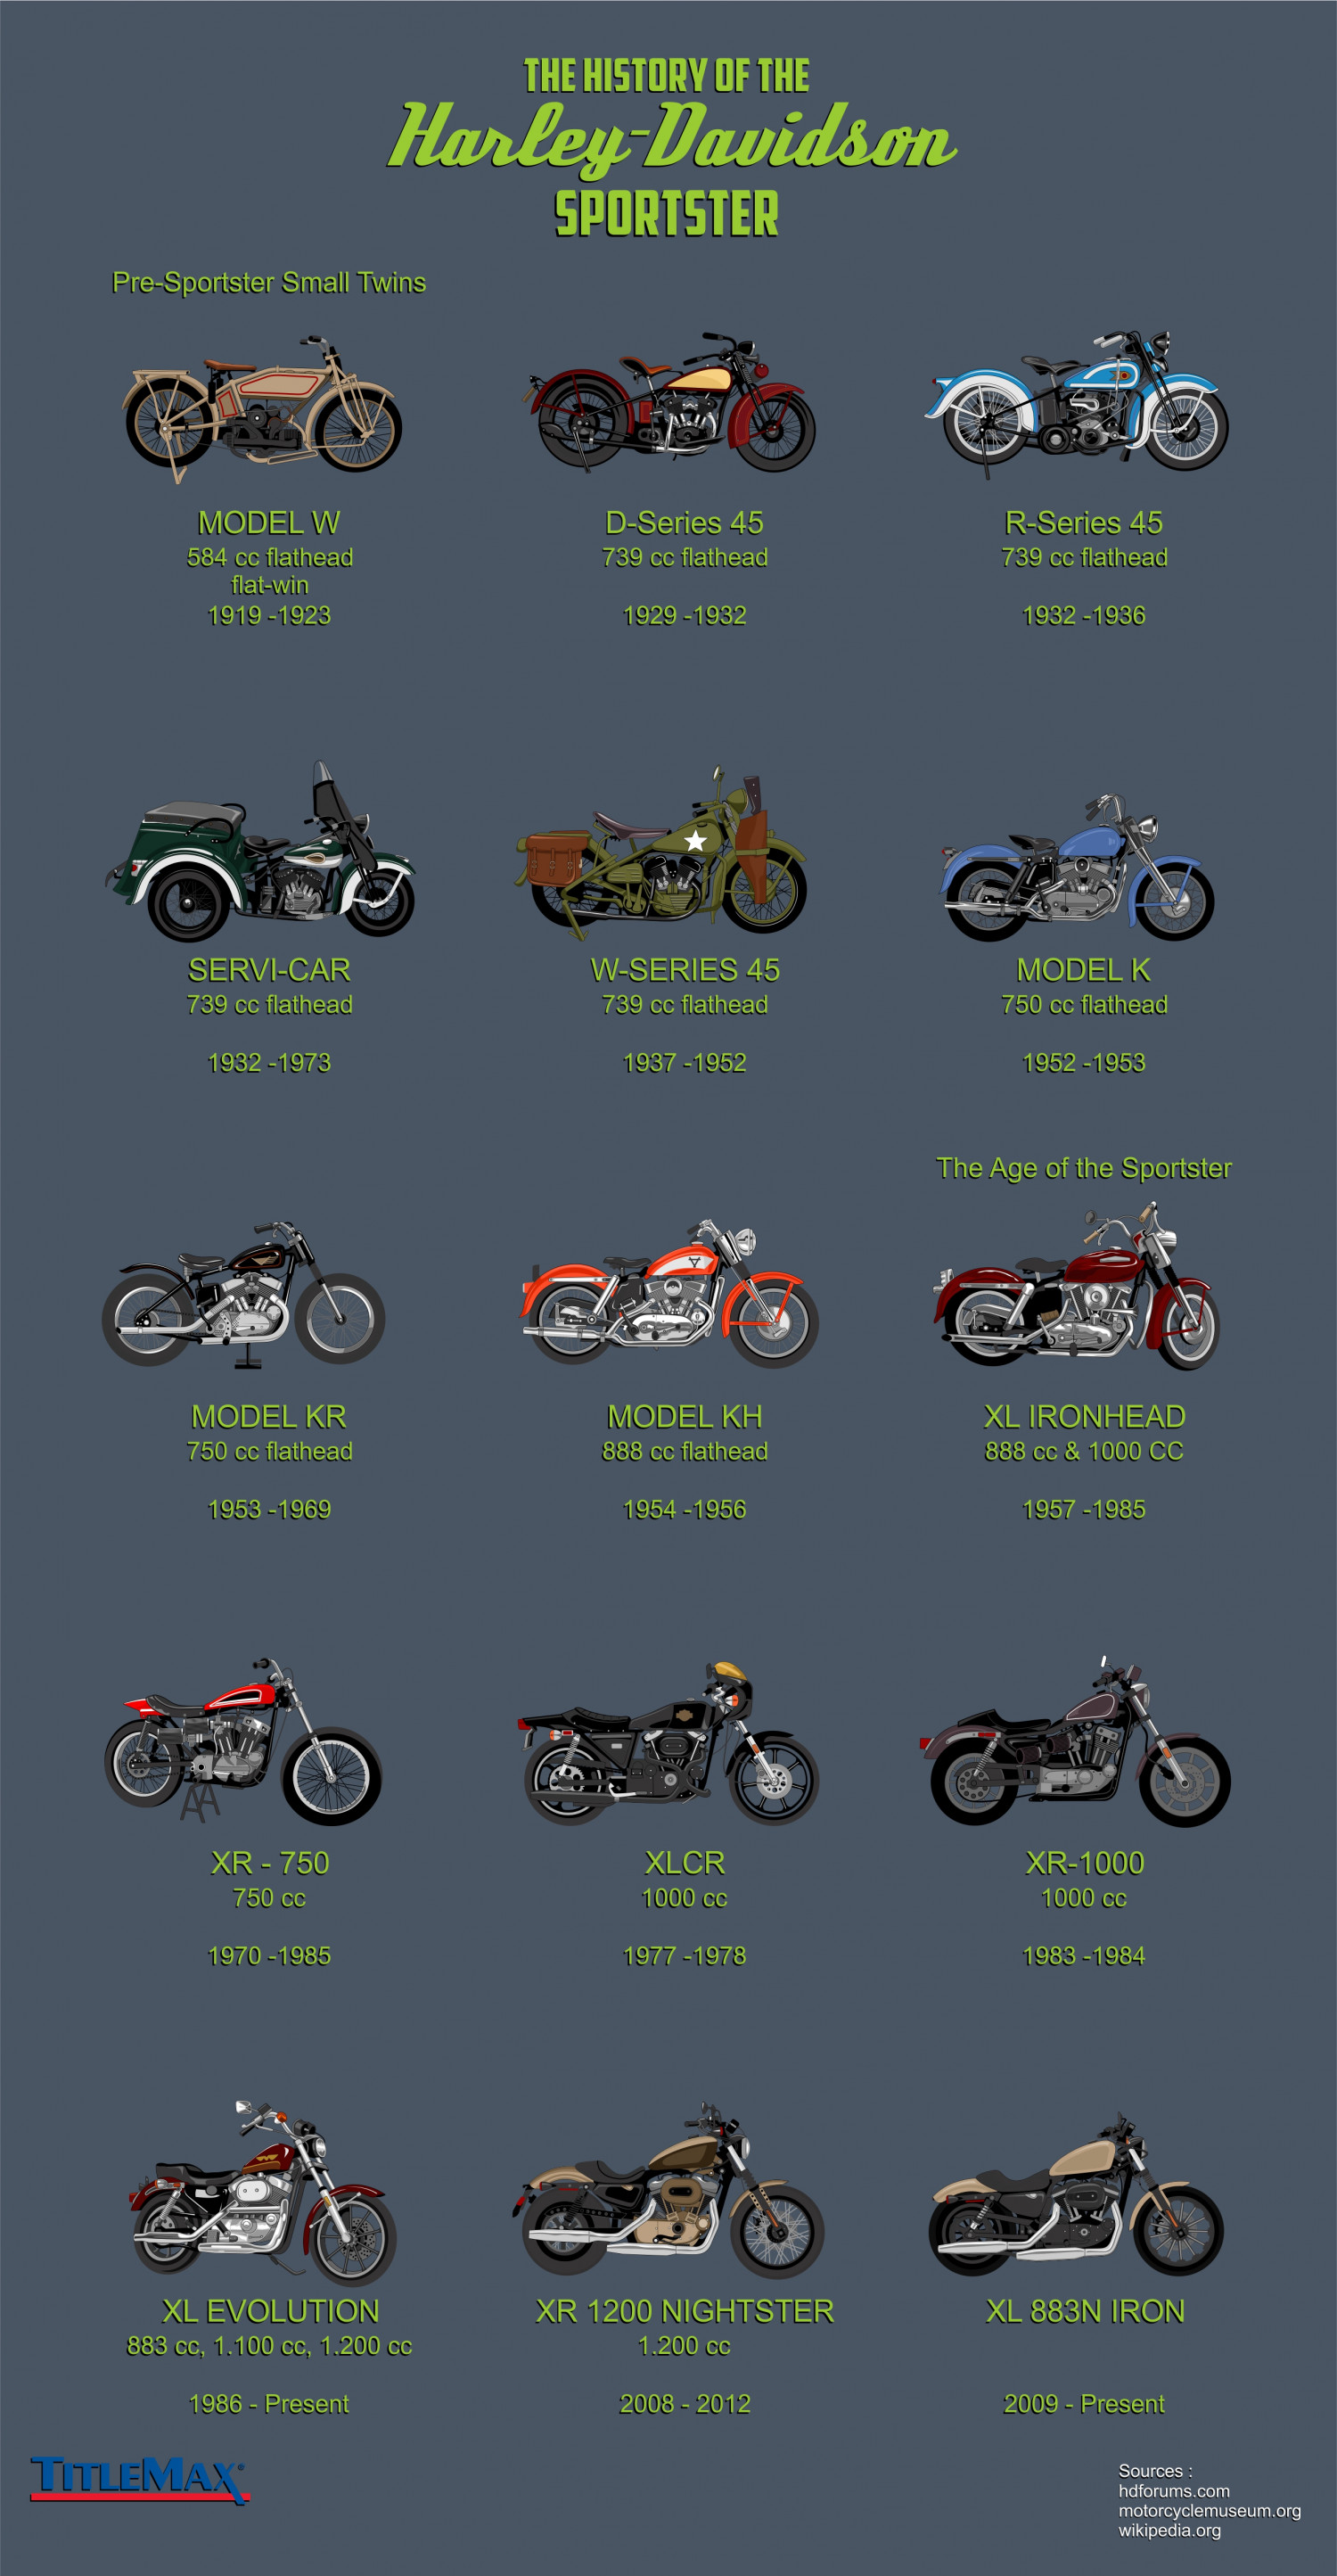 the history of the harley